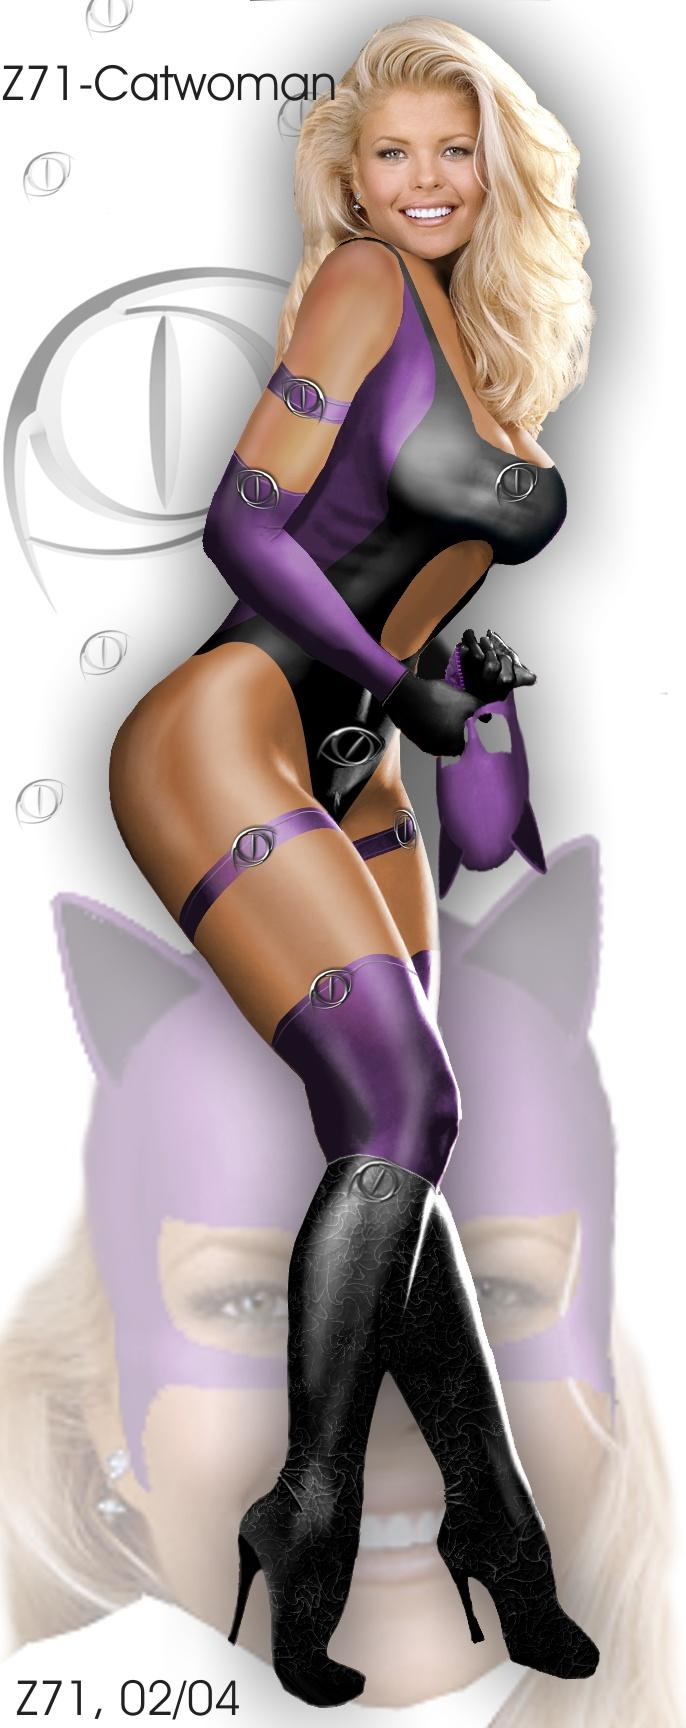 Z71-Catwoman